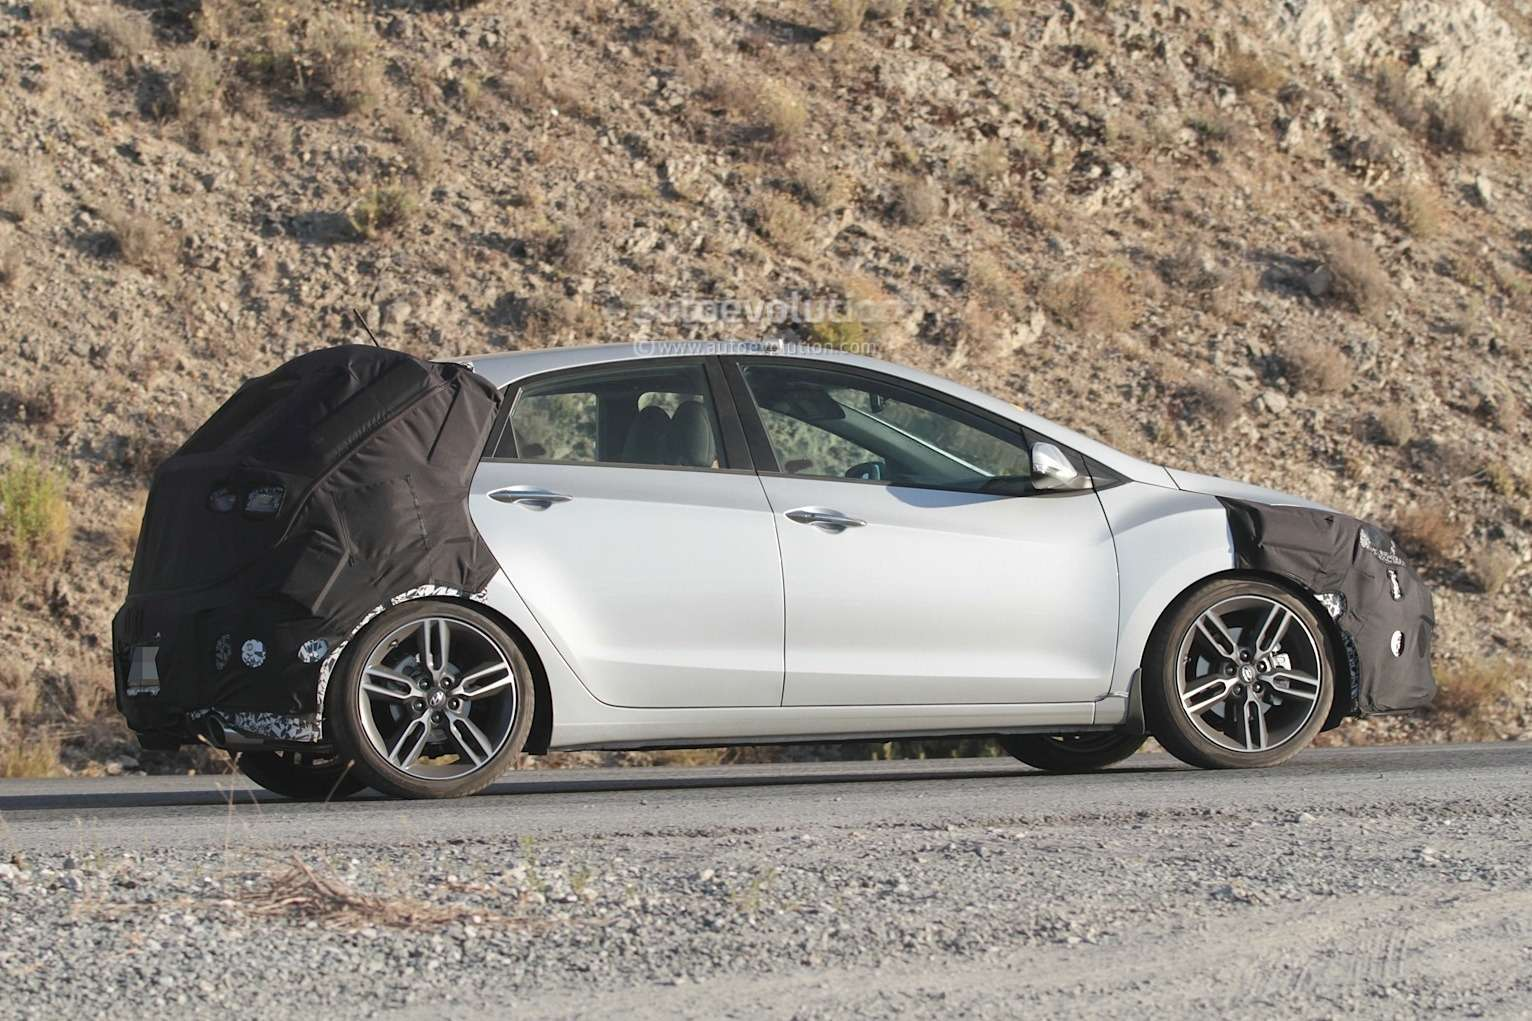 spyshots-hyundai-i30-n-hot-hatch-seen-for-the-first-time_5